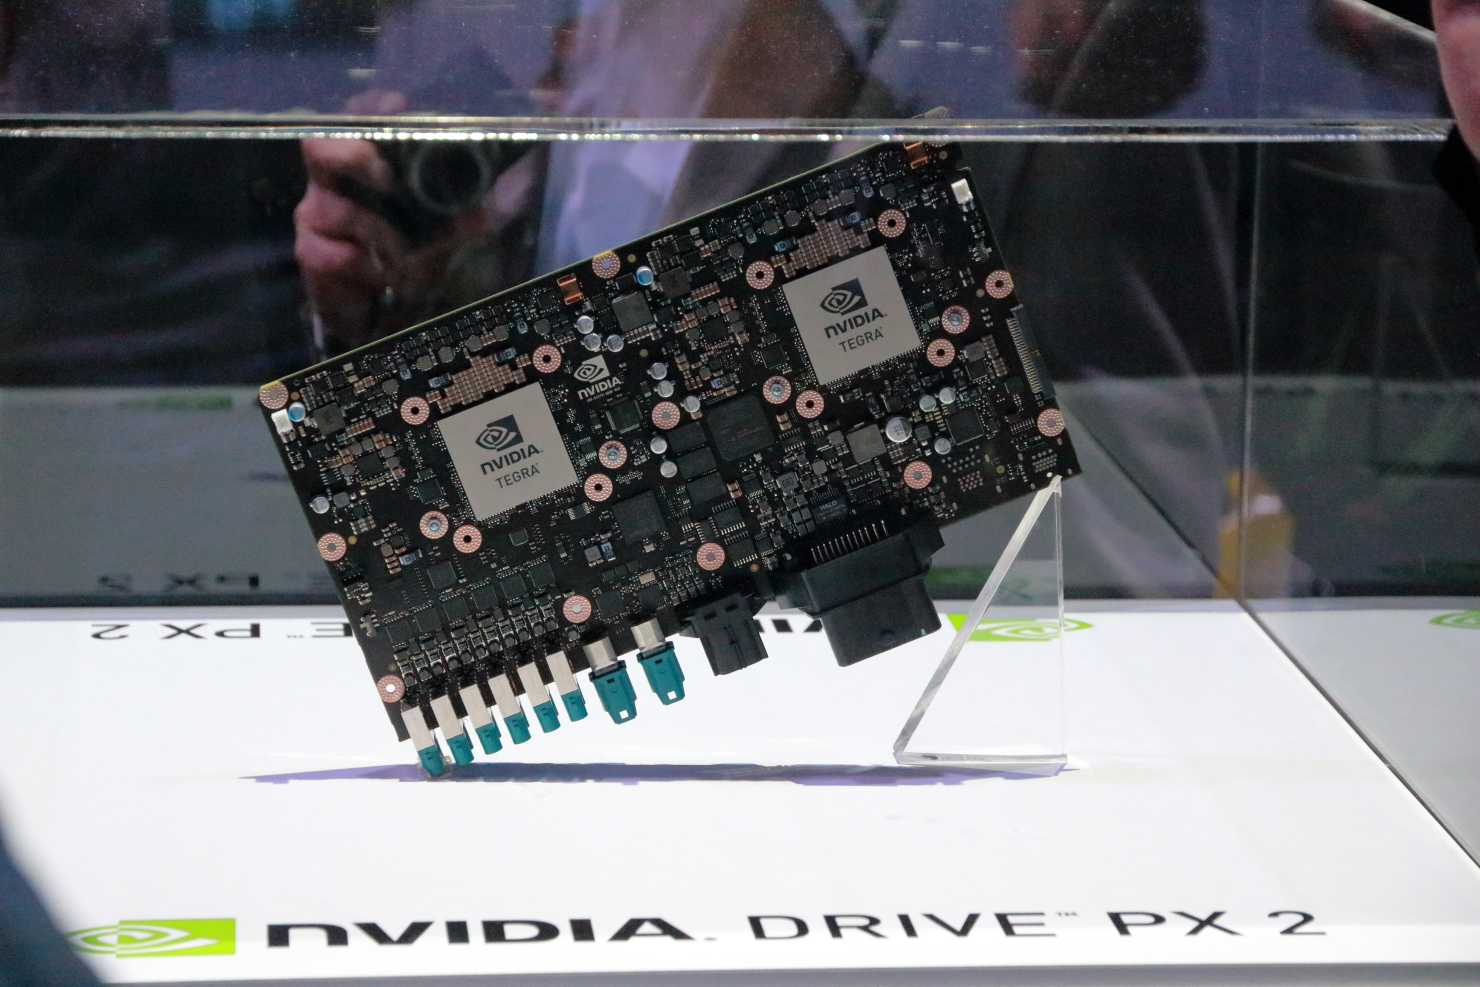 Nvidia's Drive PX2 is being eyed by several carmakers for their autonomous vehicles. (photo by João-Pierre S. Ruth)